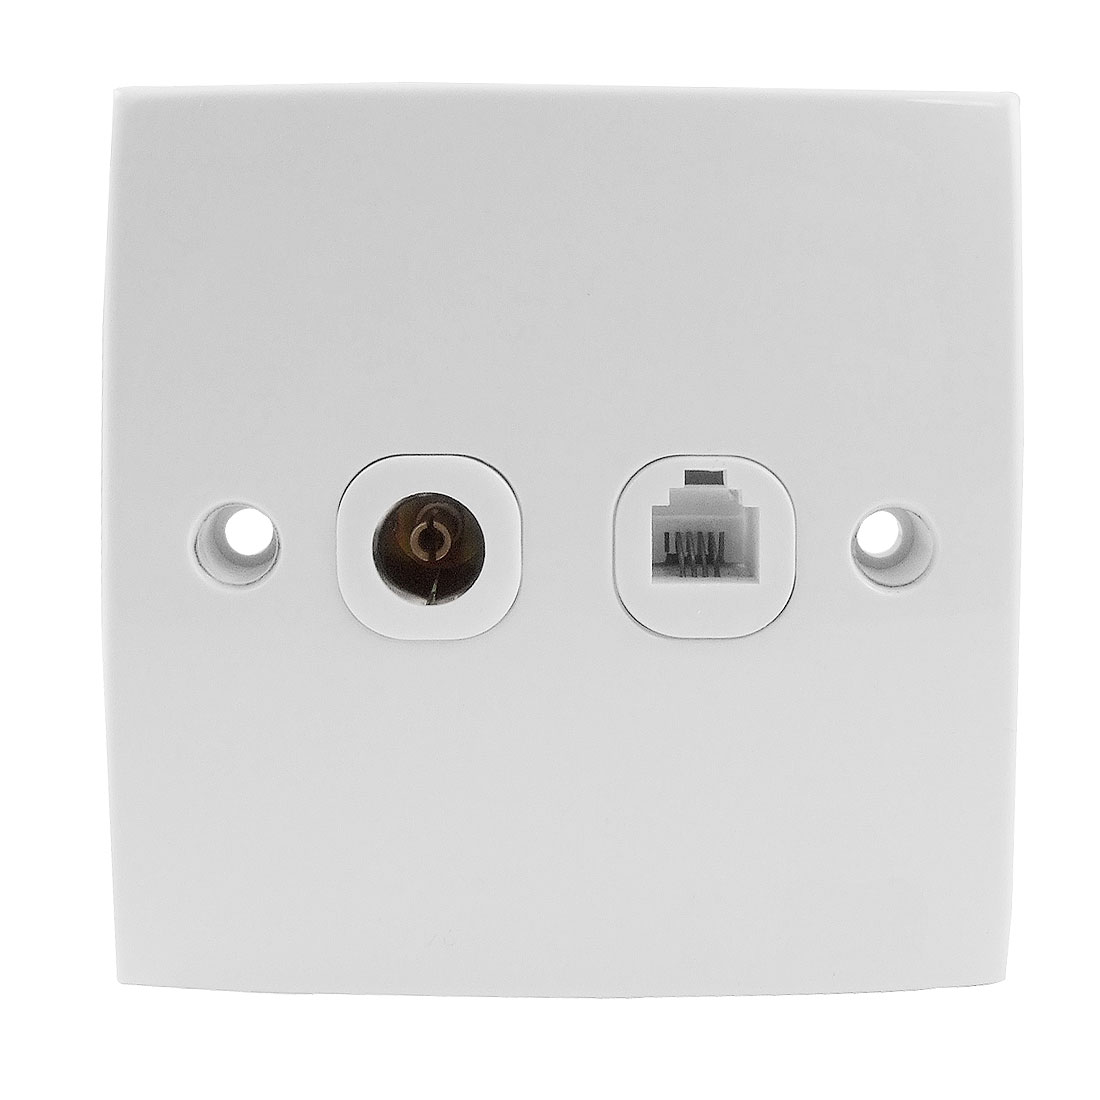 White Square Plastic Rj11 Telephone TV Socket Wall Plate